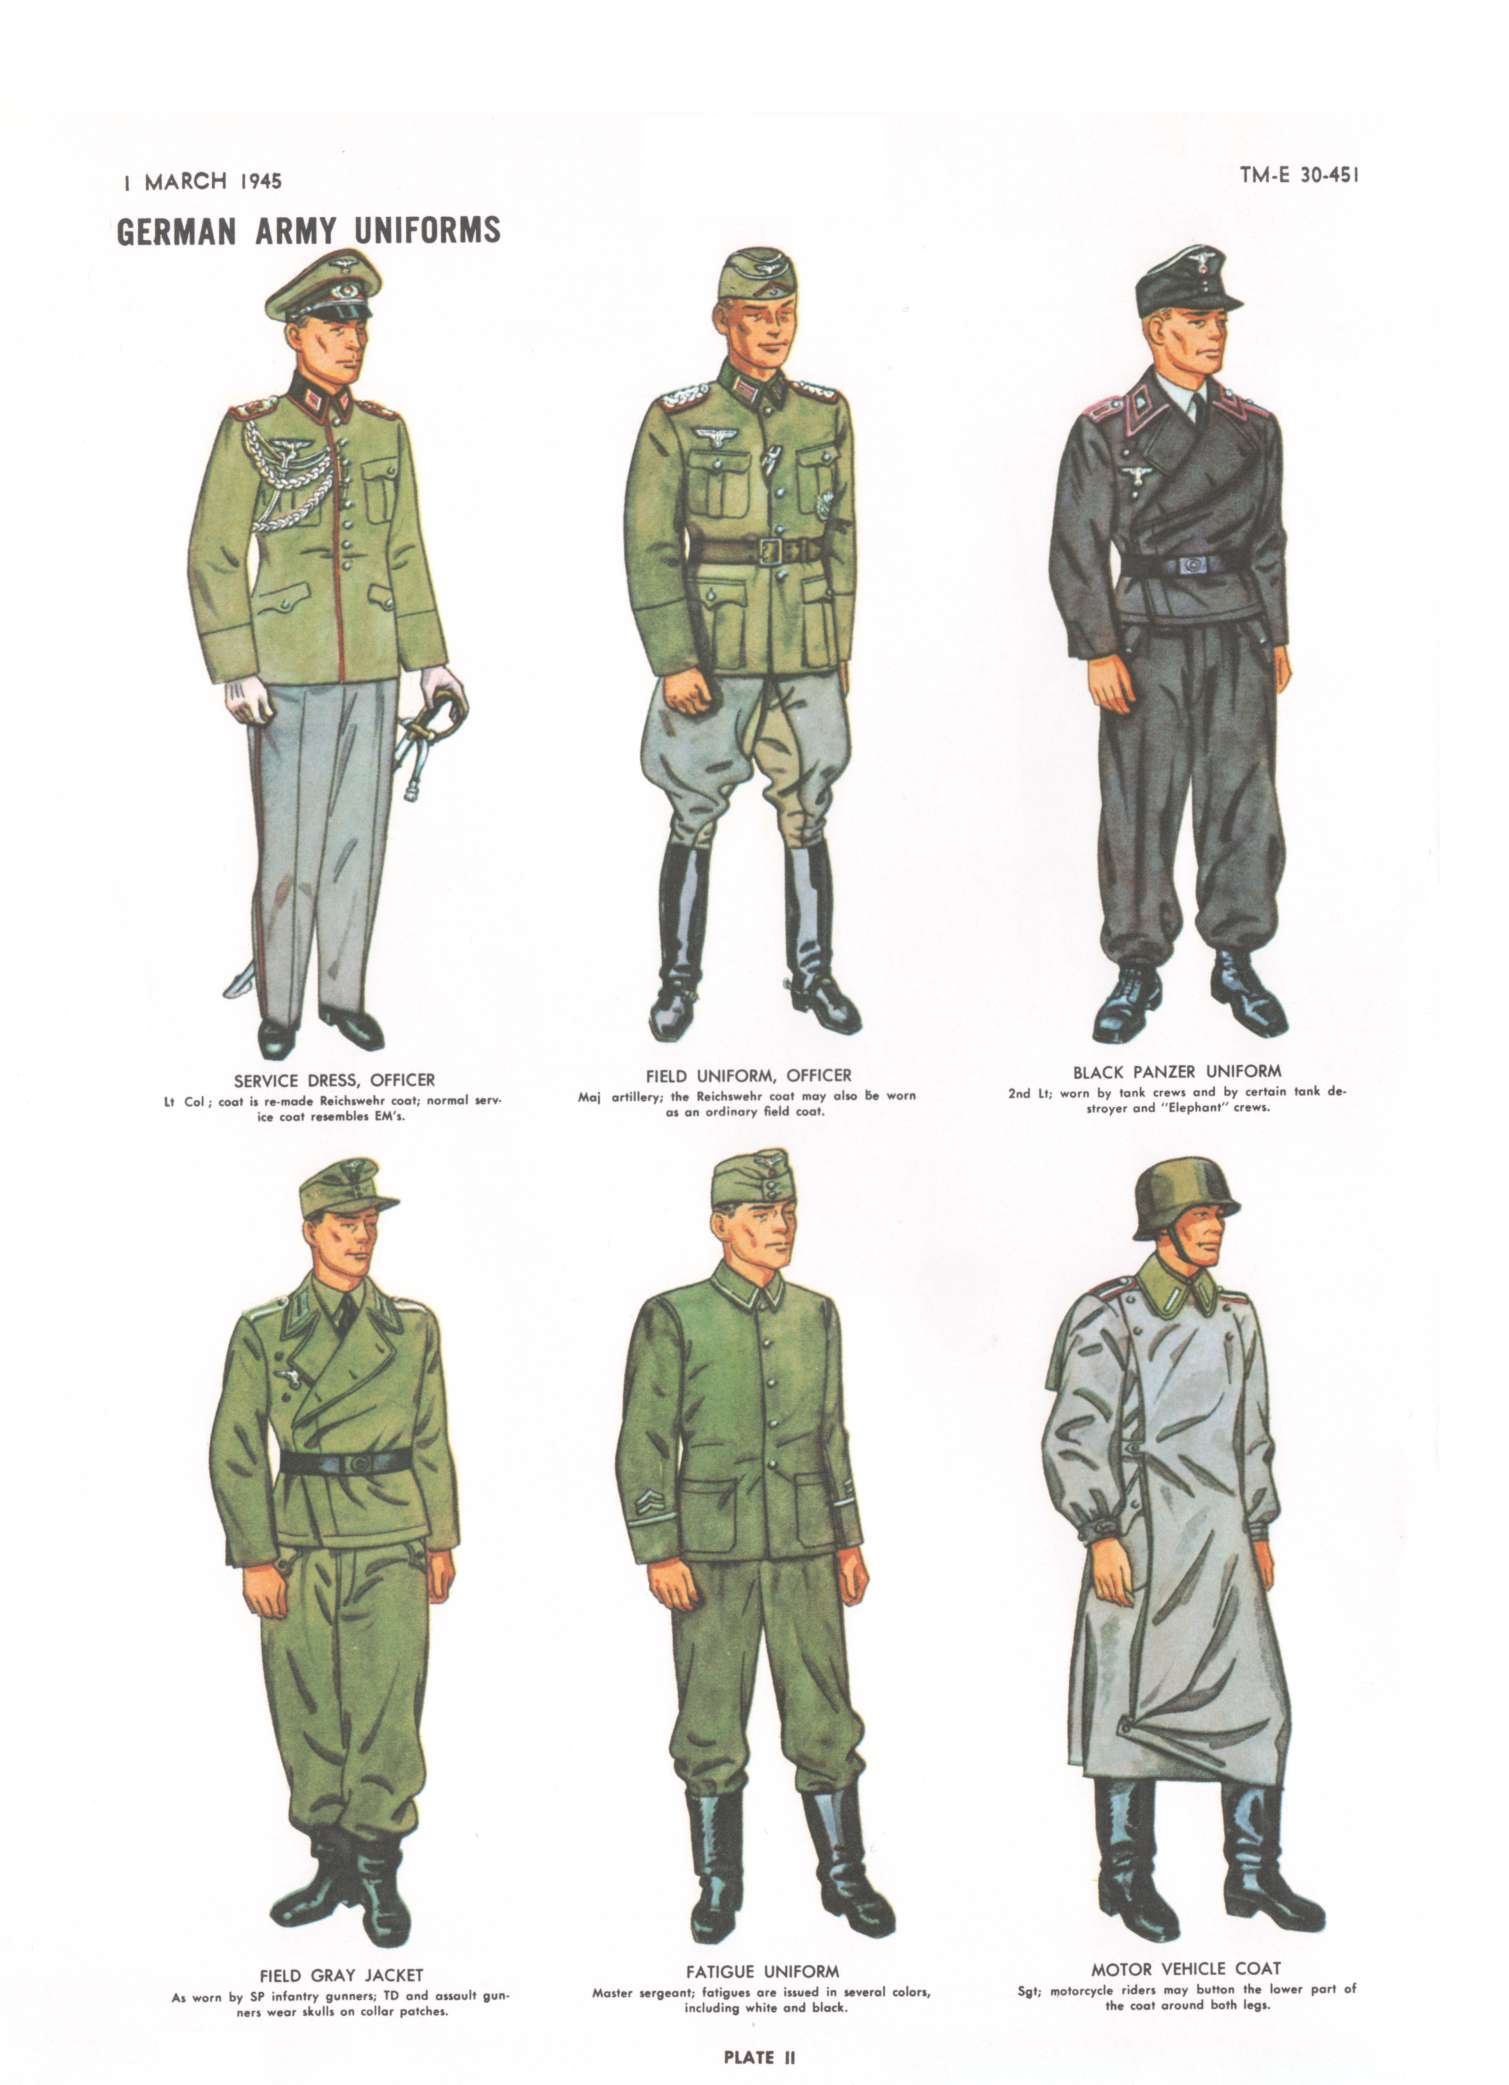 Green coat infantry